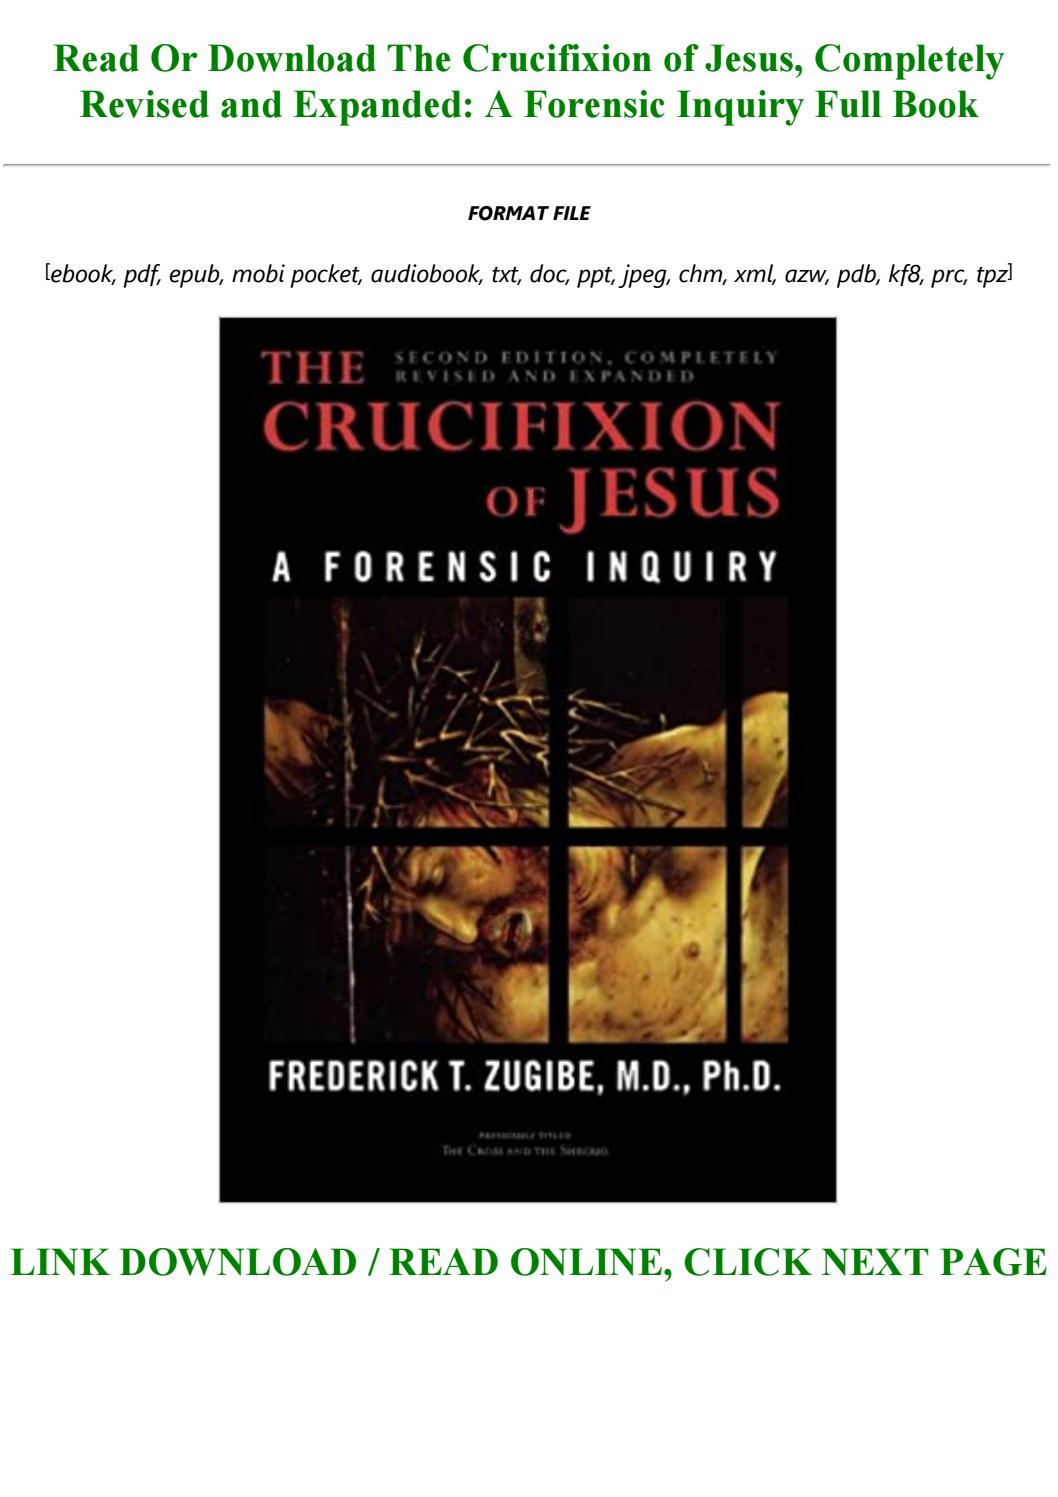 The Crucifixion Of Jesus Completely Revised And Expanded A Forensic Inquiry By Biscuit146546 Issuu